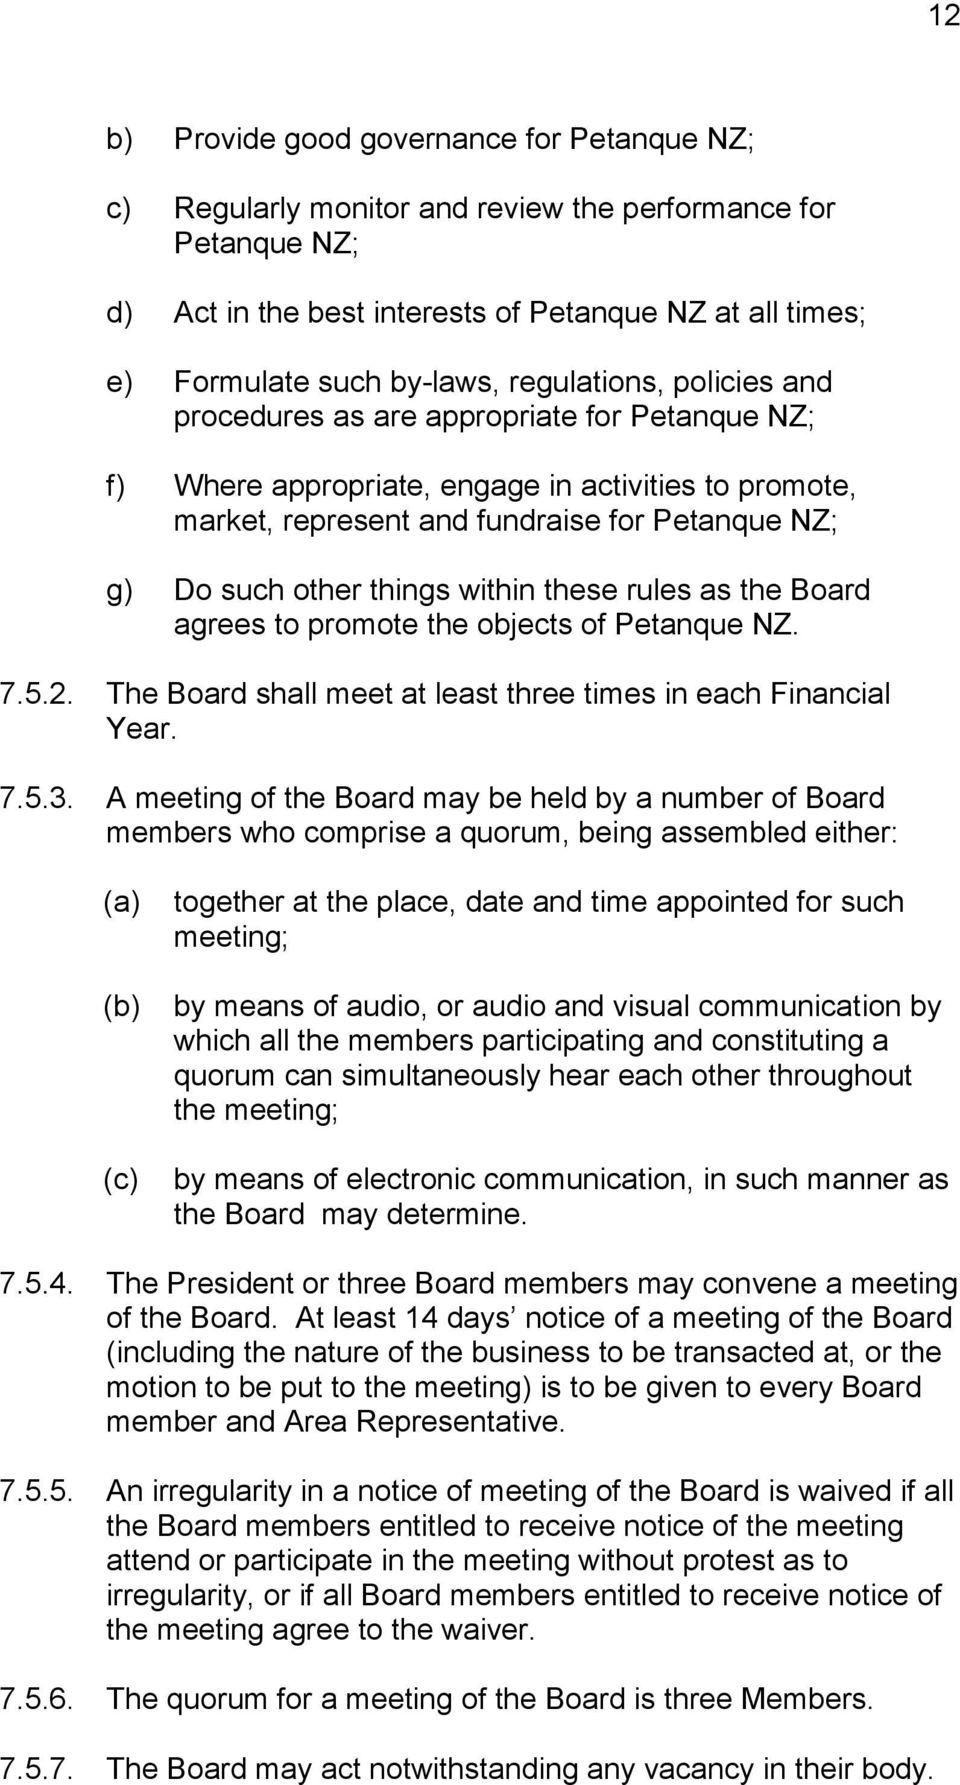 things within these rules as the Board agrees to promote the objects of Petanque NZ. 7.5.2. The Board shall meet at least three times in each Financial Year. 7.5.3.